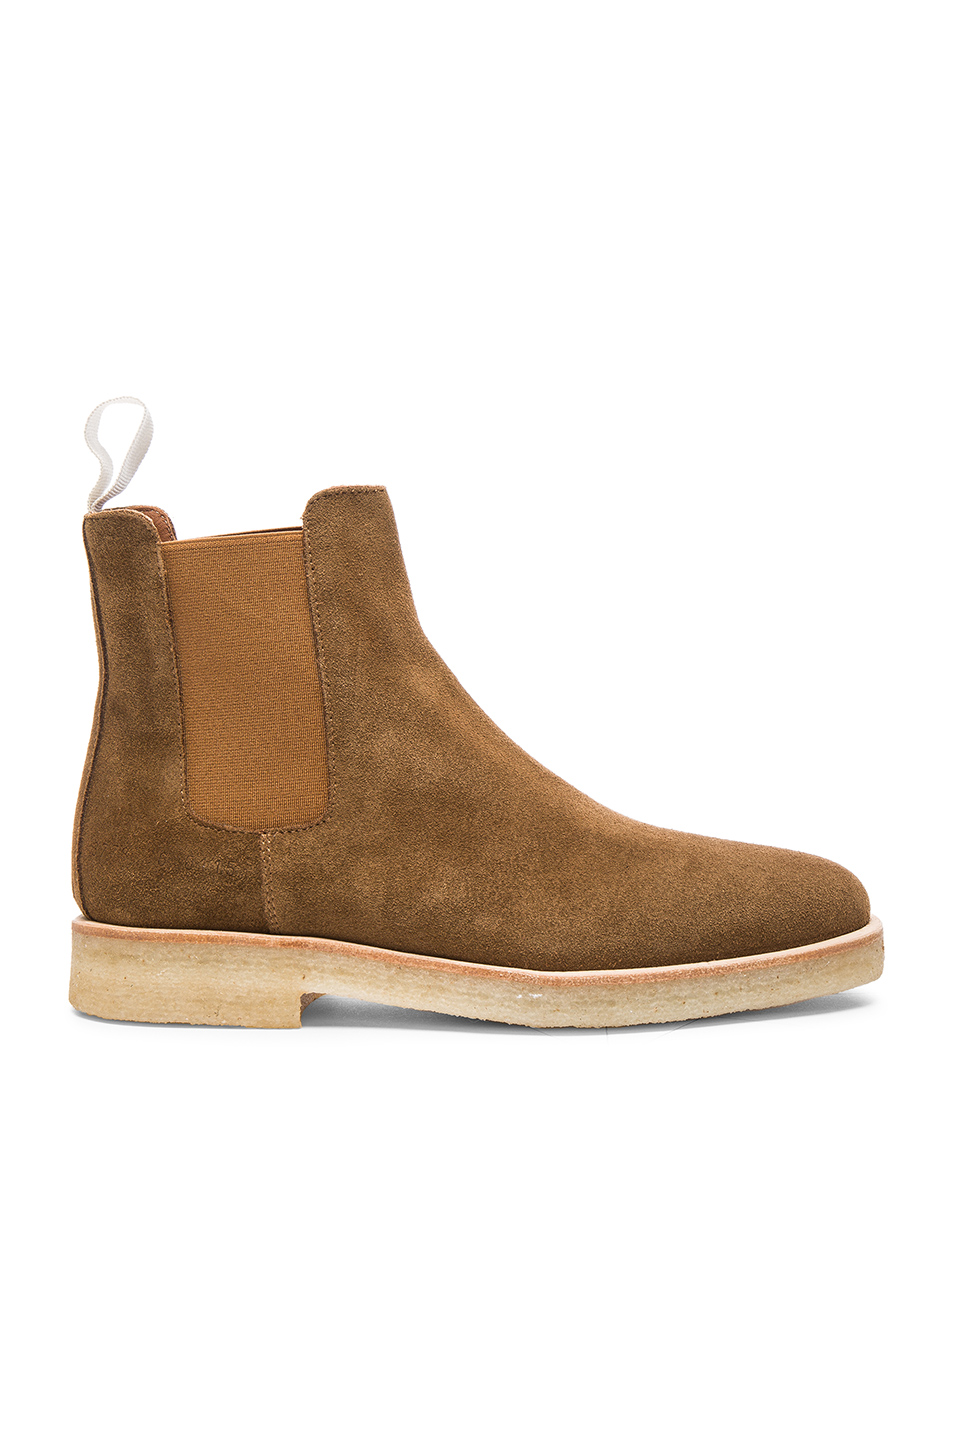 Common Projects Suede Chelsea Boots In Tobacco